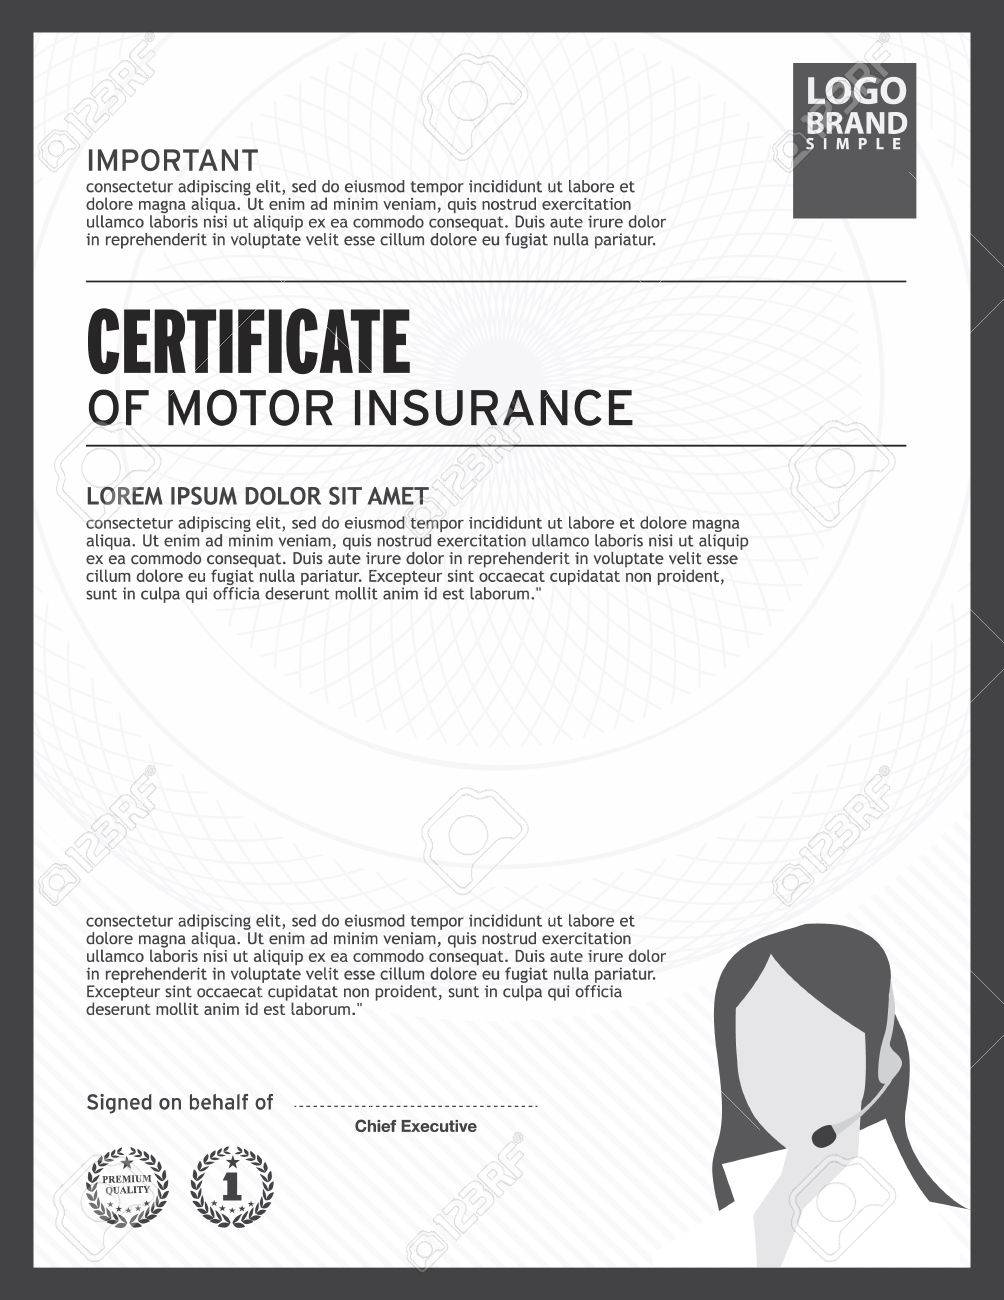 Certificate Of Motor Insurance Template. Royalty Free Cliparts ...